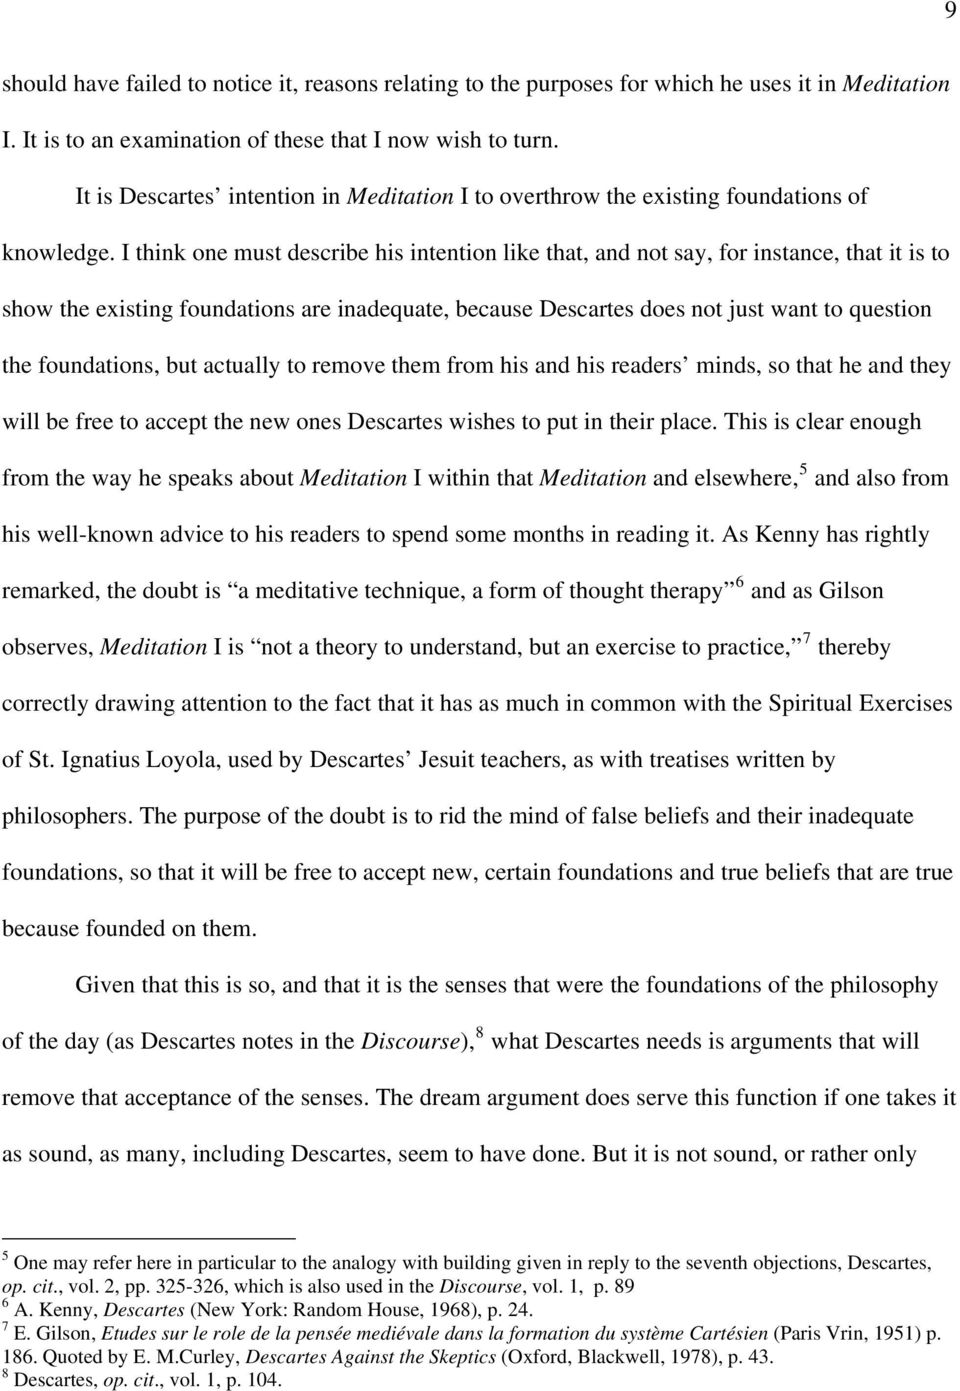 an analysis of the foundationalism and the meditations of descartes Descartes and foundationalism - maynooth university eprints and cartesian epistemology definition,cartesian dualism, our knowledge is built upon these foundations traditionally, the epistemology of descartes, especially the ideas expressed in his meditations, have been regarded as foundational in nature i will examine whether descartes is a.